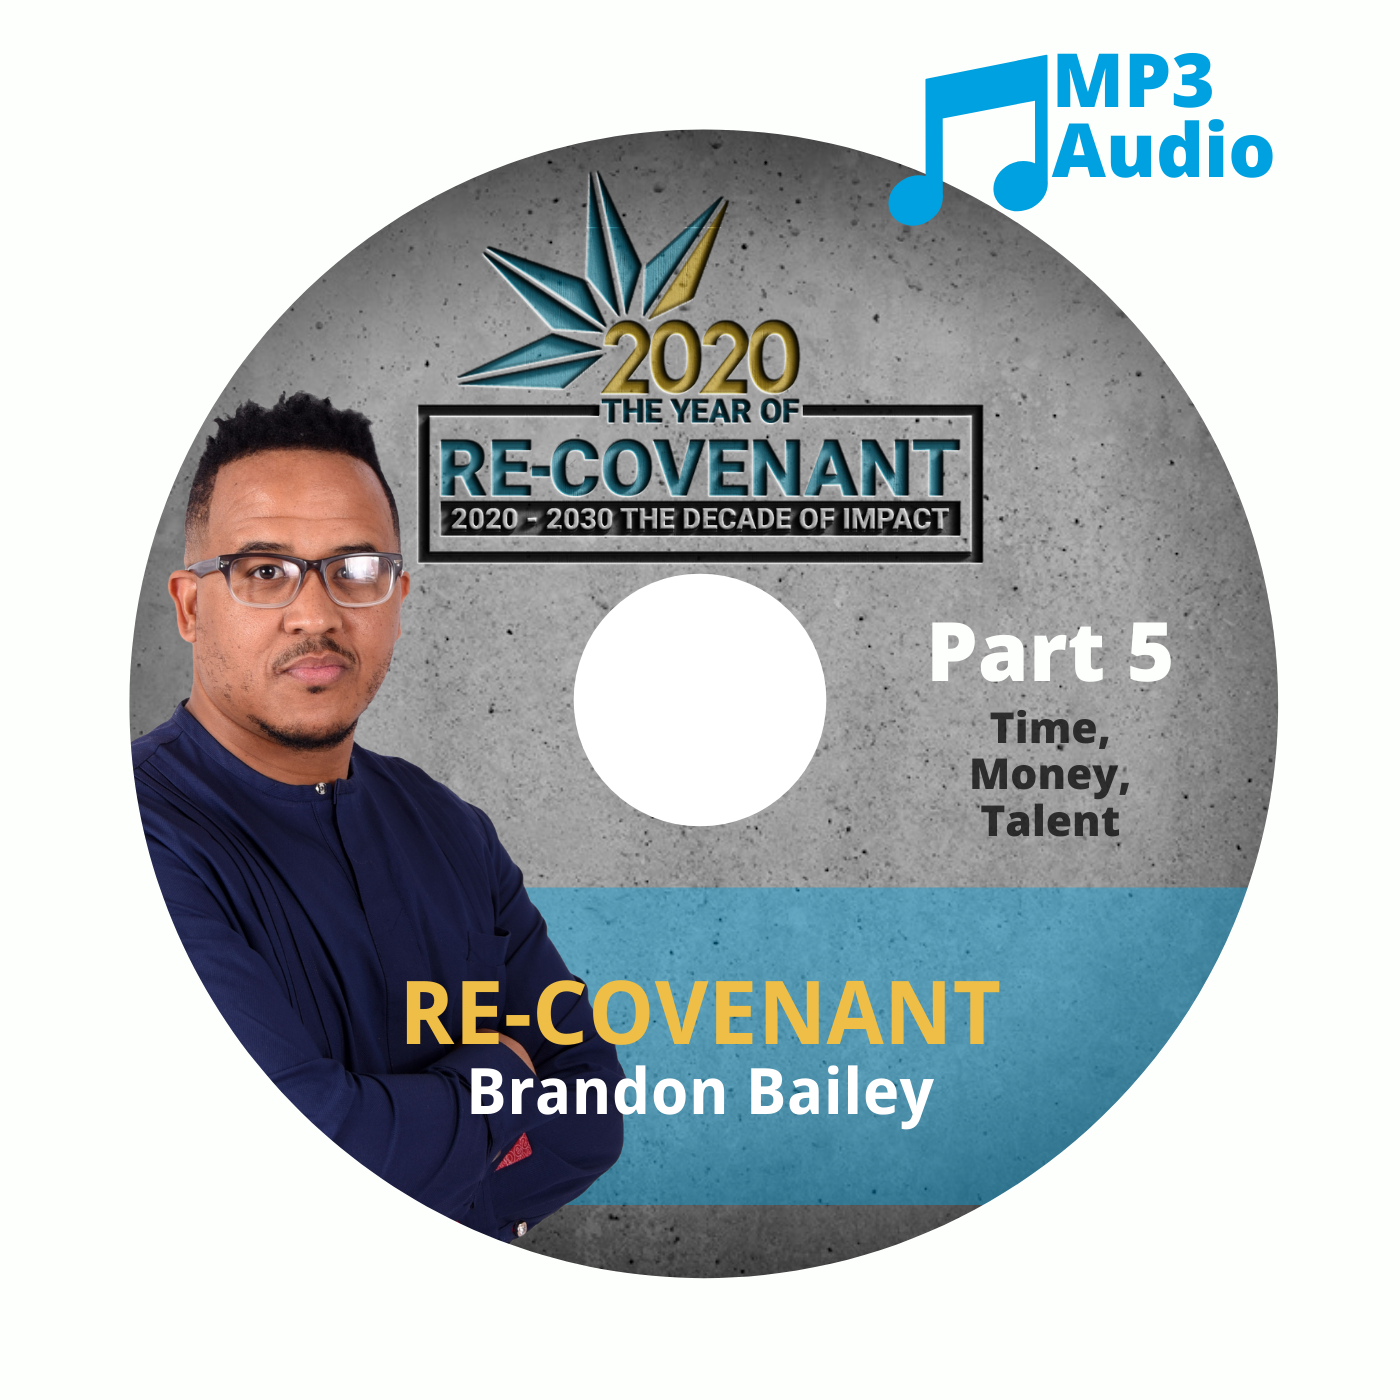 Re-Covenant Part 5: Time, Money, Talent